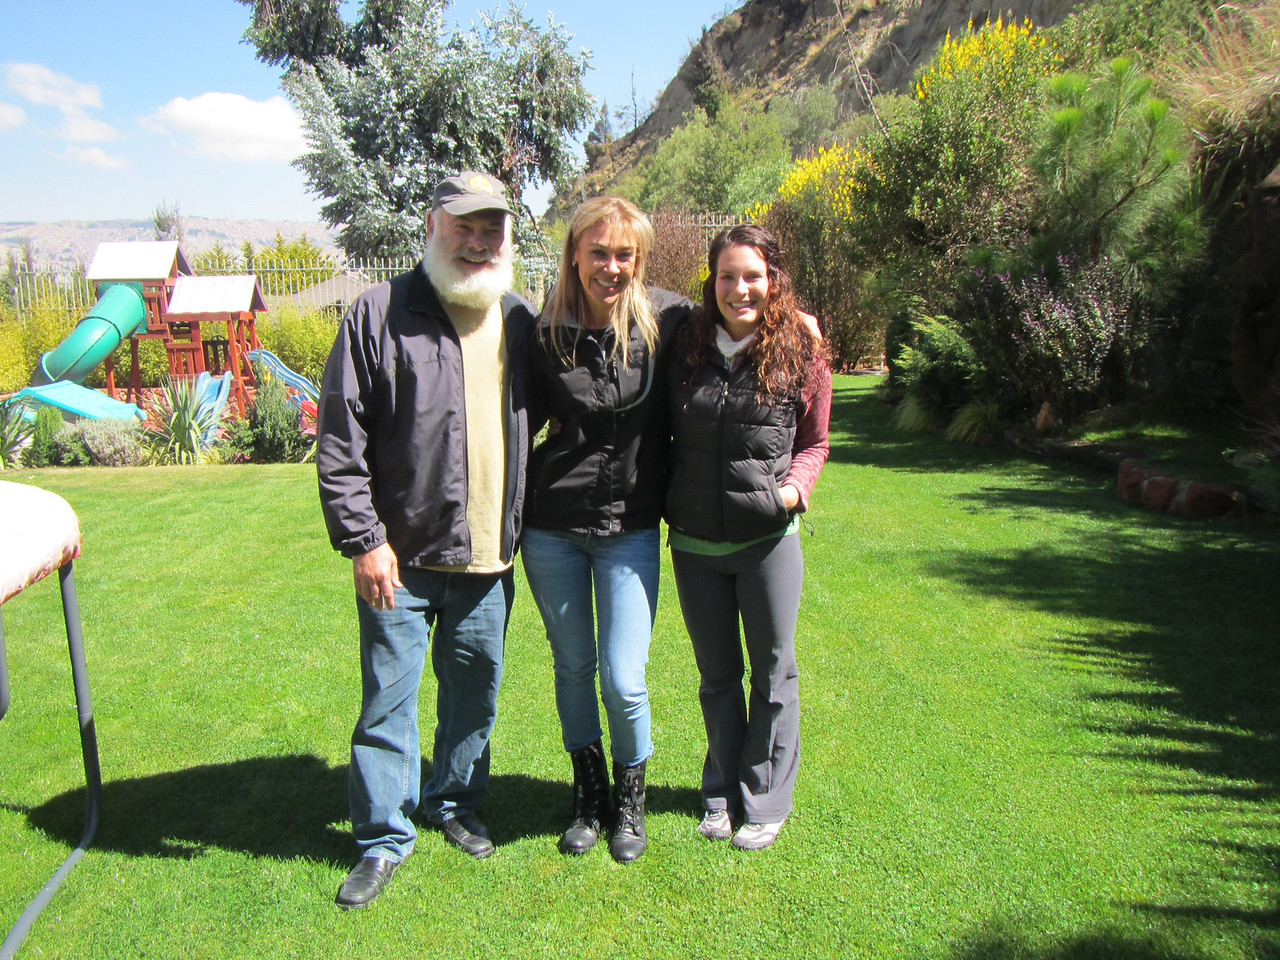 With my daughter Diana, far right, and Daniela Reznicek, of our host family, who is a singer, actress and former Miss Bolivia.